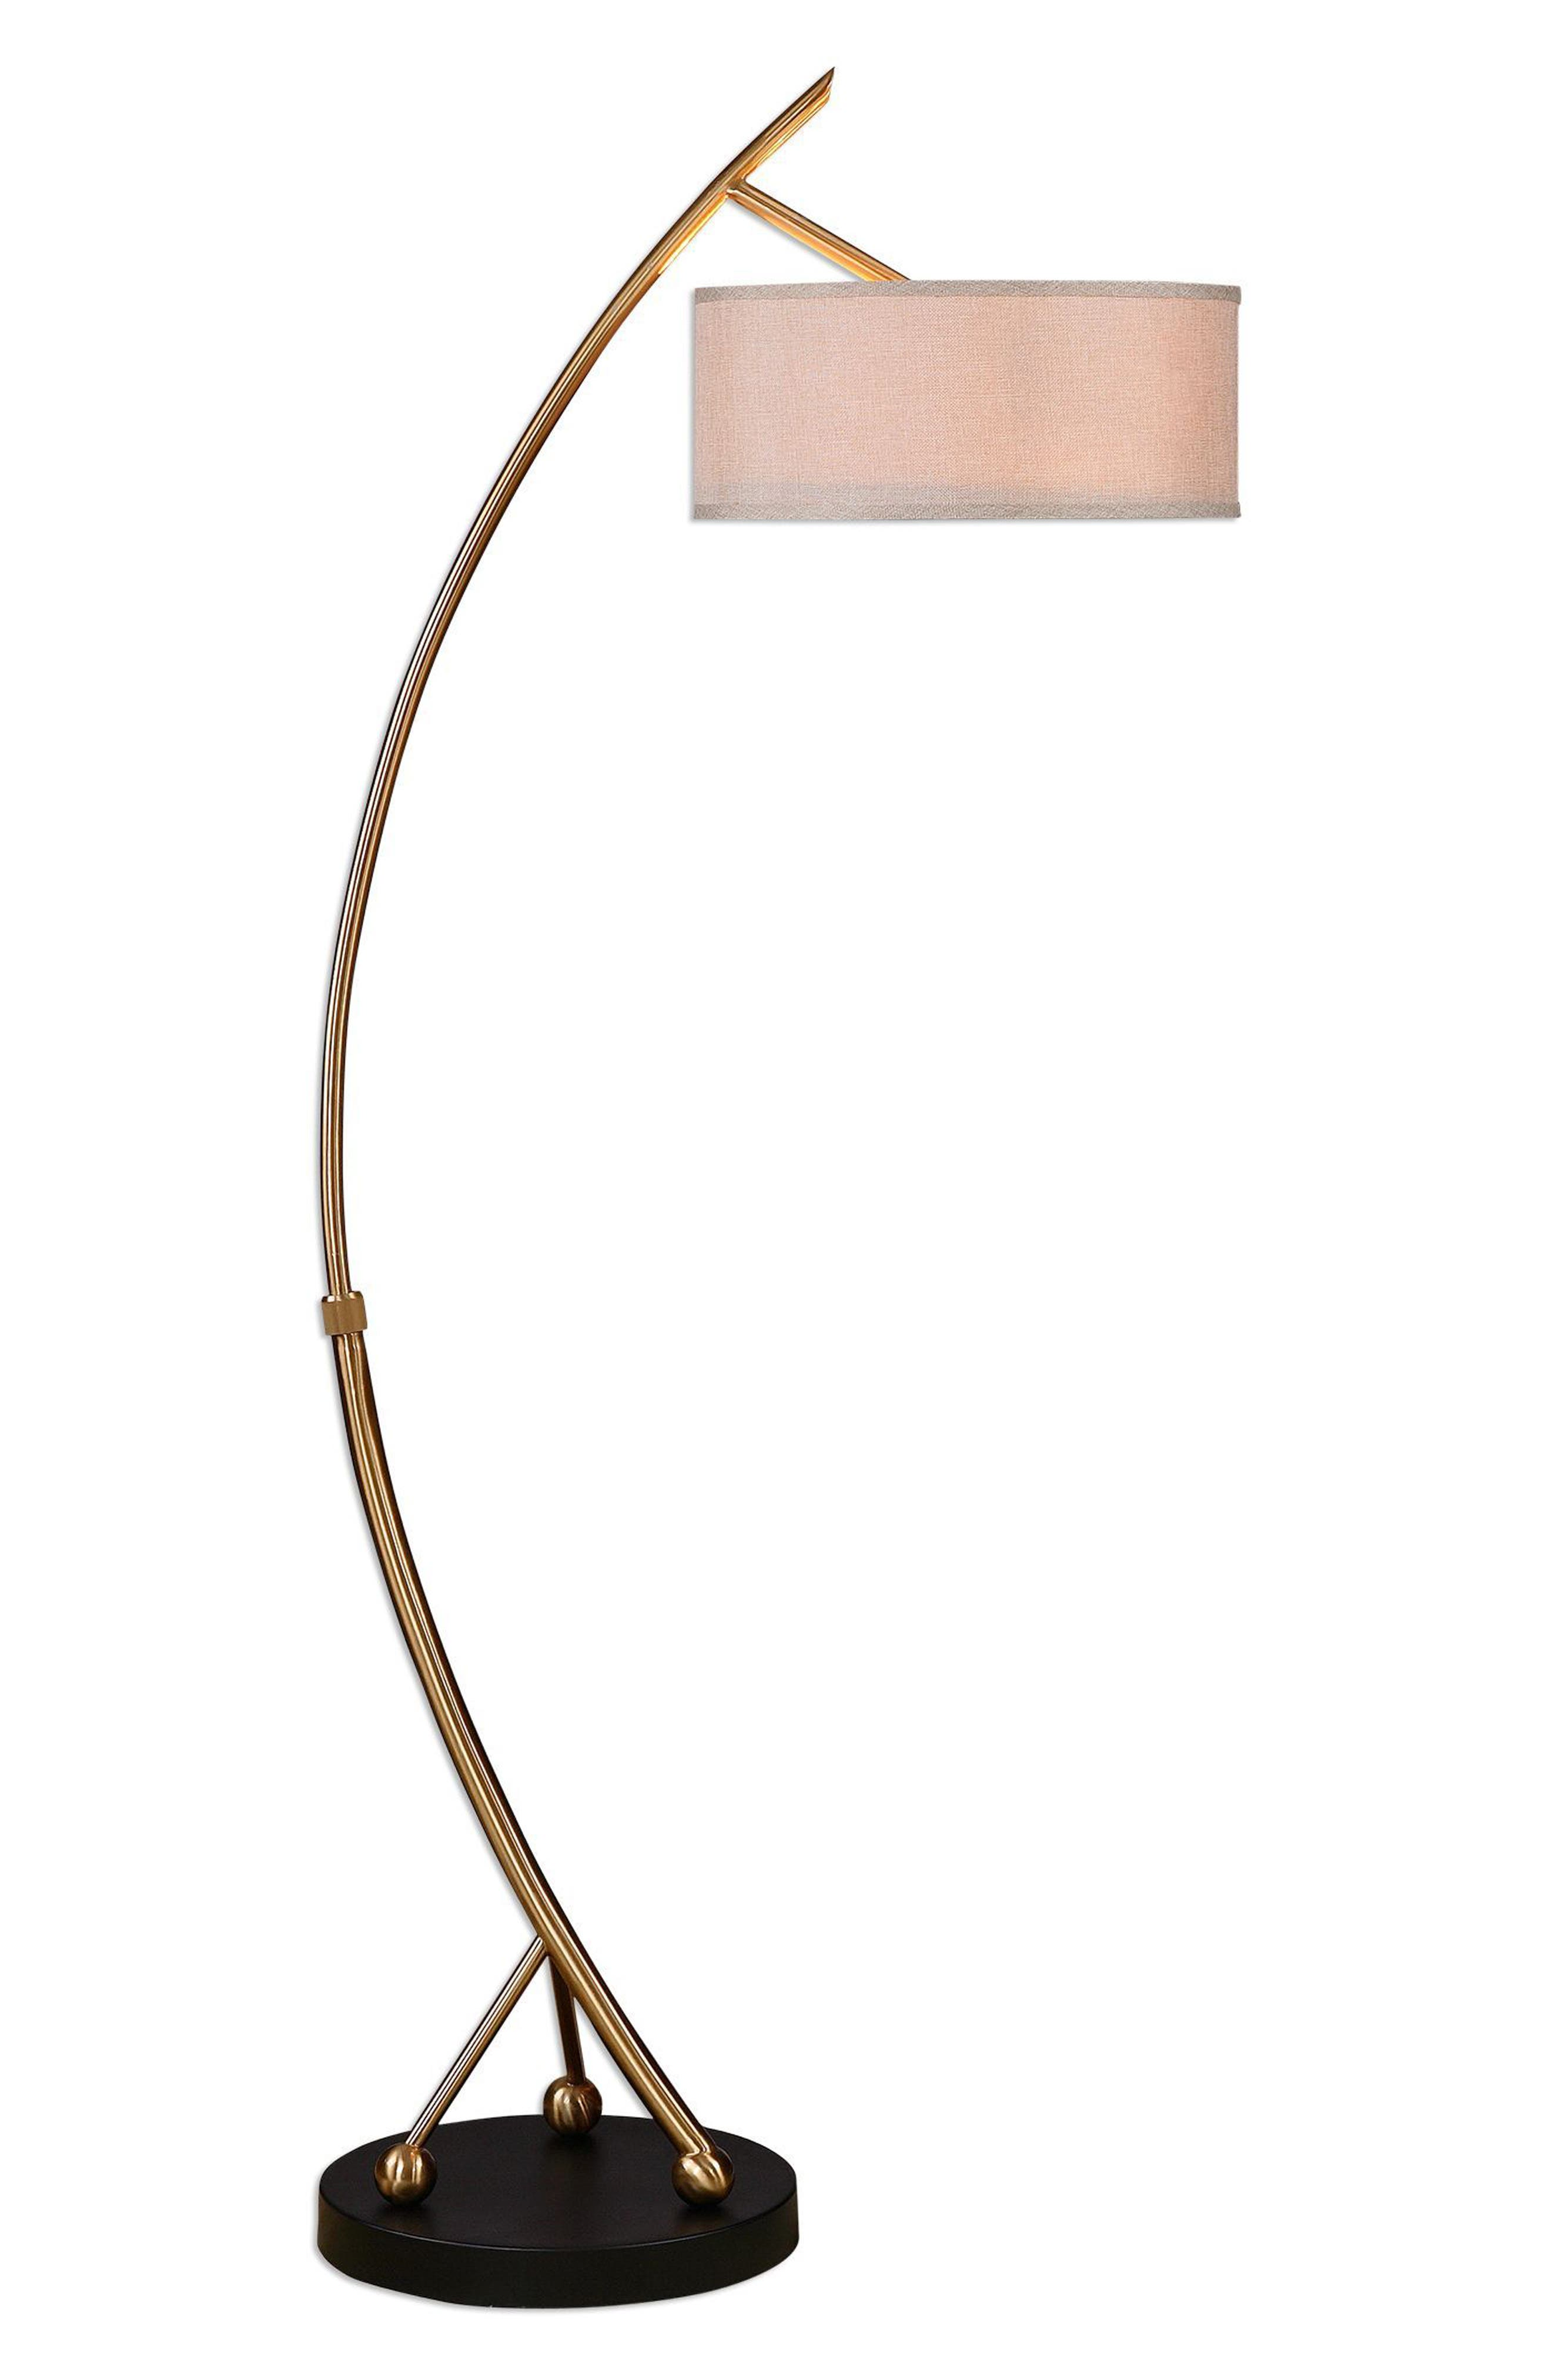 Alternate Image 1 Selected - Uttermost Vardar Floor Lamp